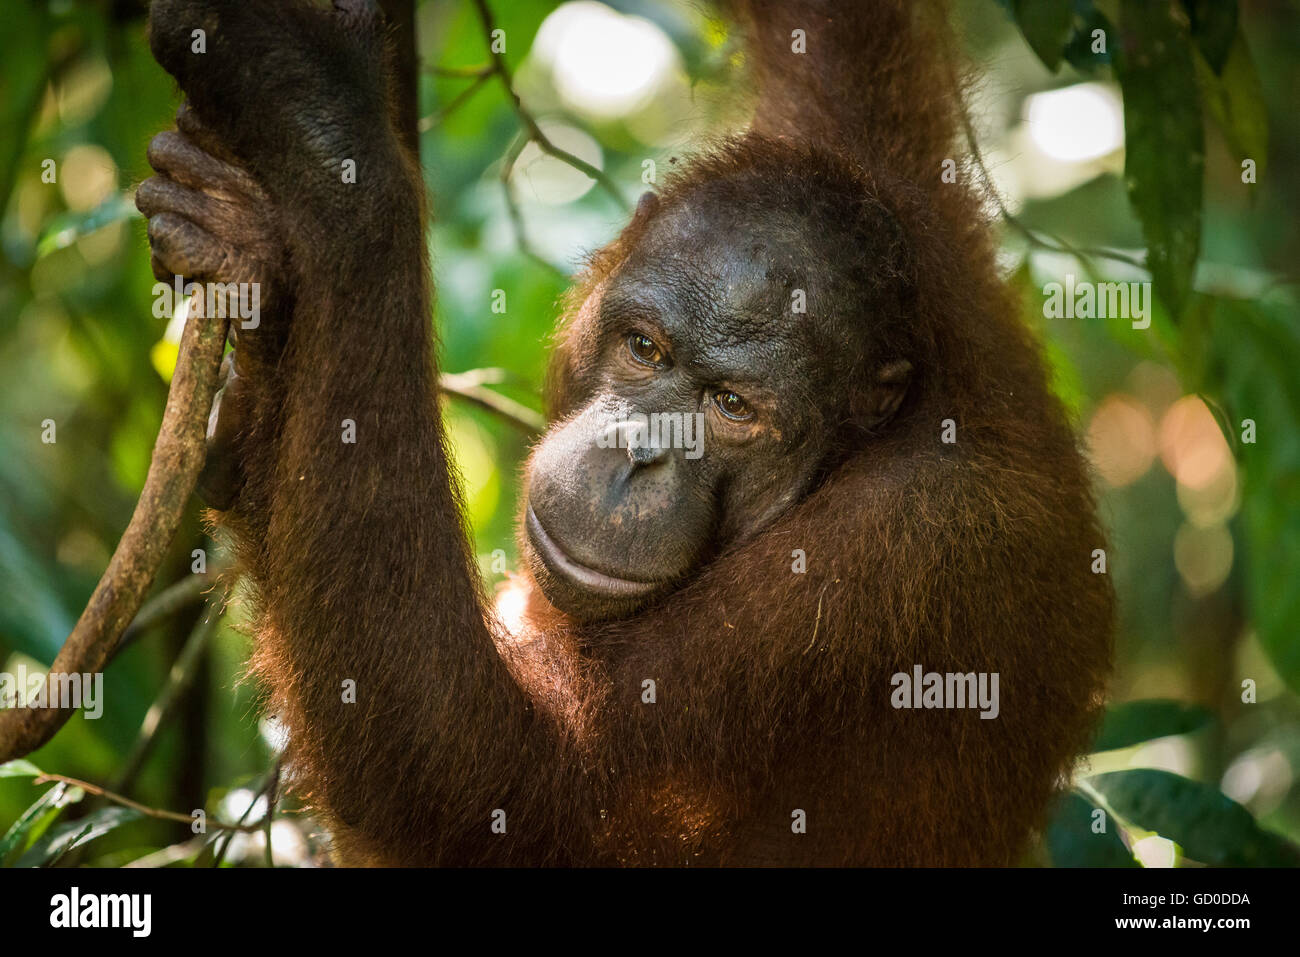 An adult female orangutan swings among the trees at a wildlife sanctuary in Malaysian Borneo. - Stock Image